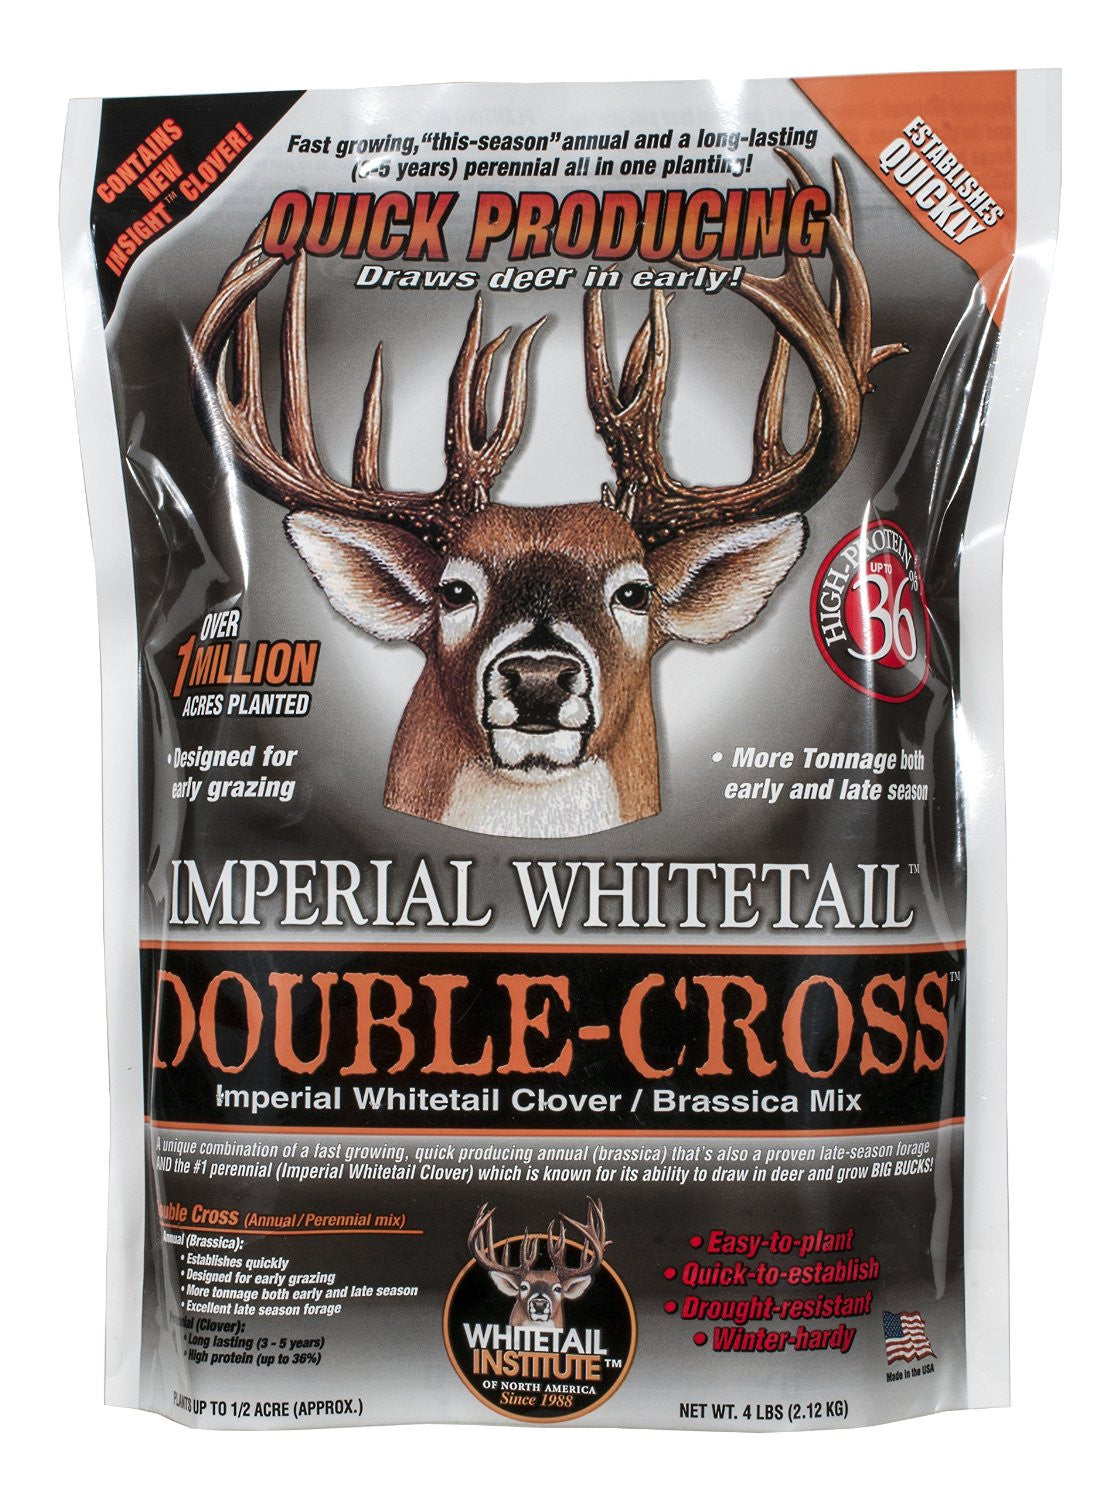 Whitetail Institute 18 Pounds Imperial Whitetail Double-Cross Clover/Brassica Mix